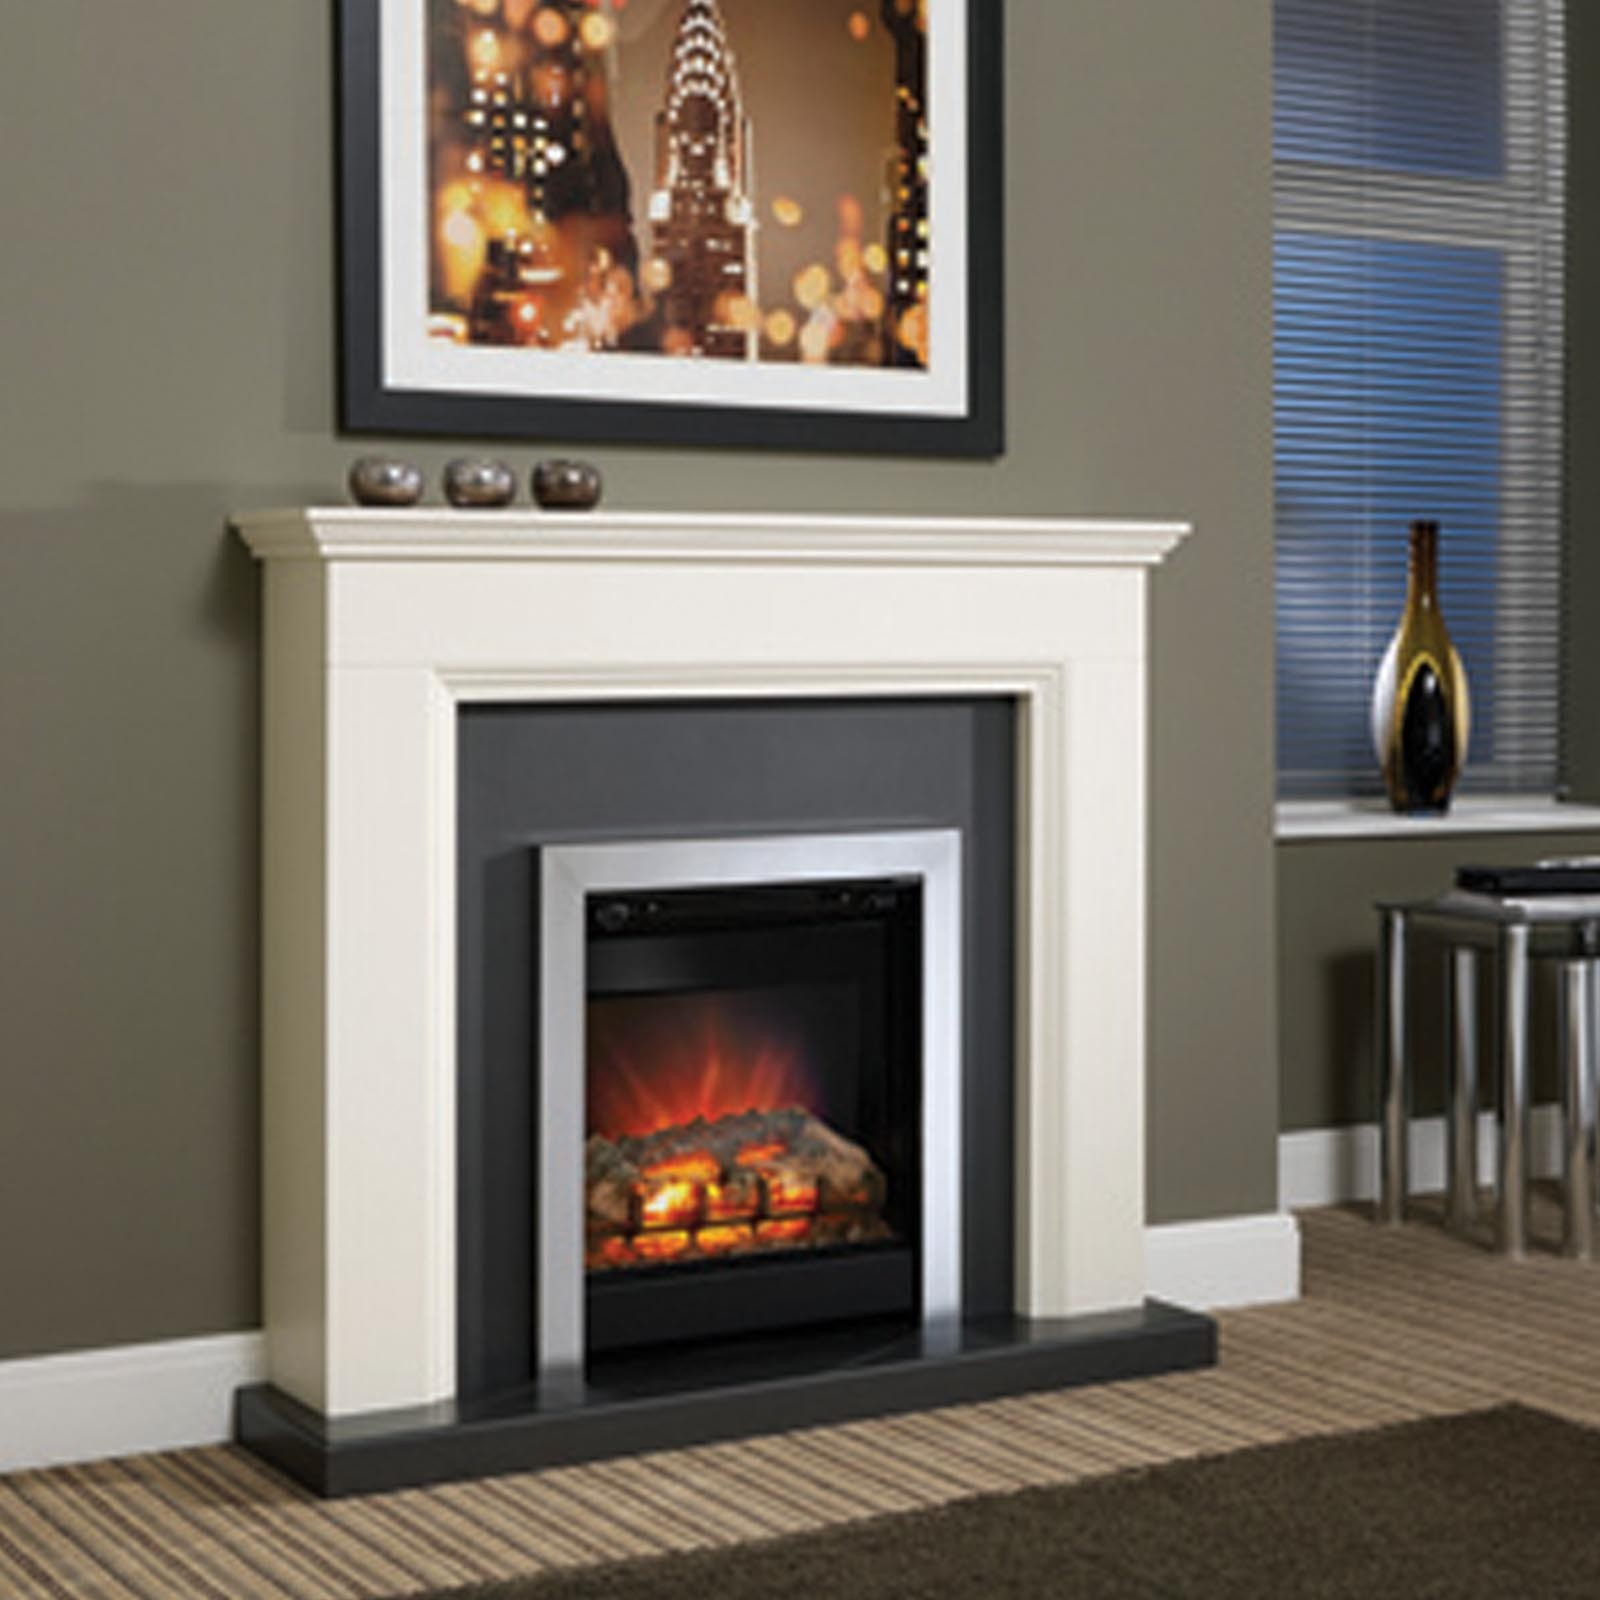 Low price be modern westcroft 46 fireplace suite for Modern gas fireplace price